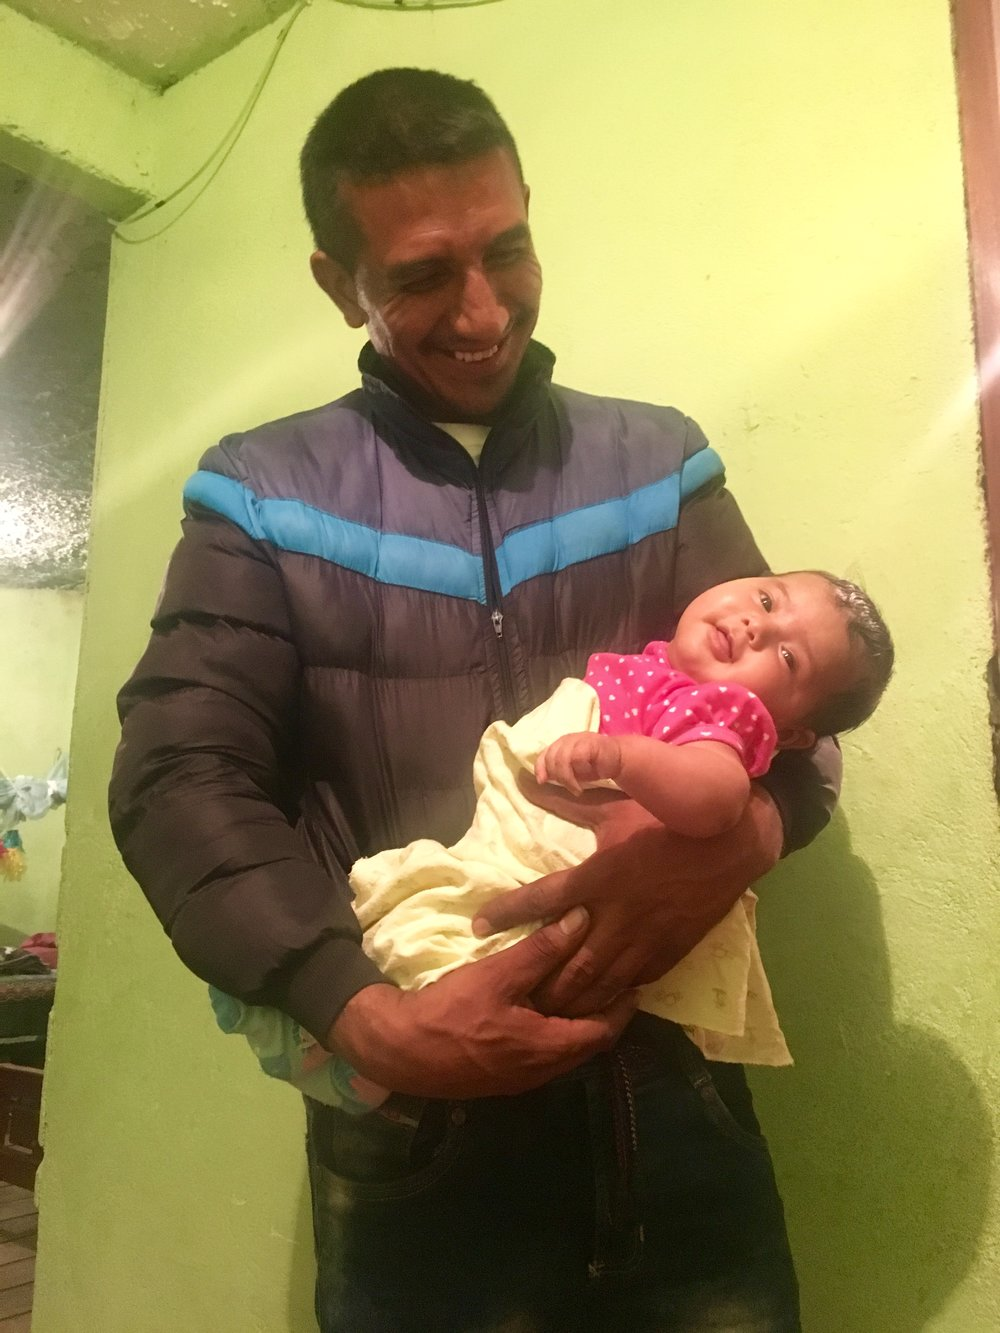 Fercho Adarme Ordoñez, our generous host, project partner, one of the most well respected members of the Inga community, and general badass lovingly holds his 4 month old daughter Fercha Alejandra.